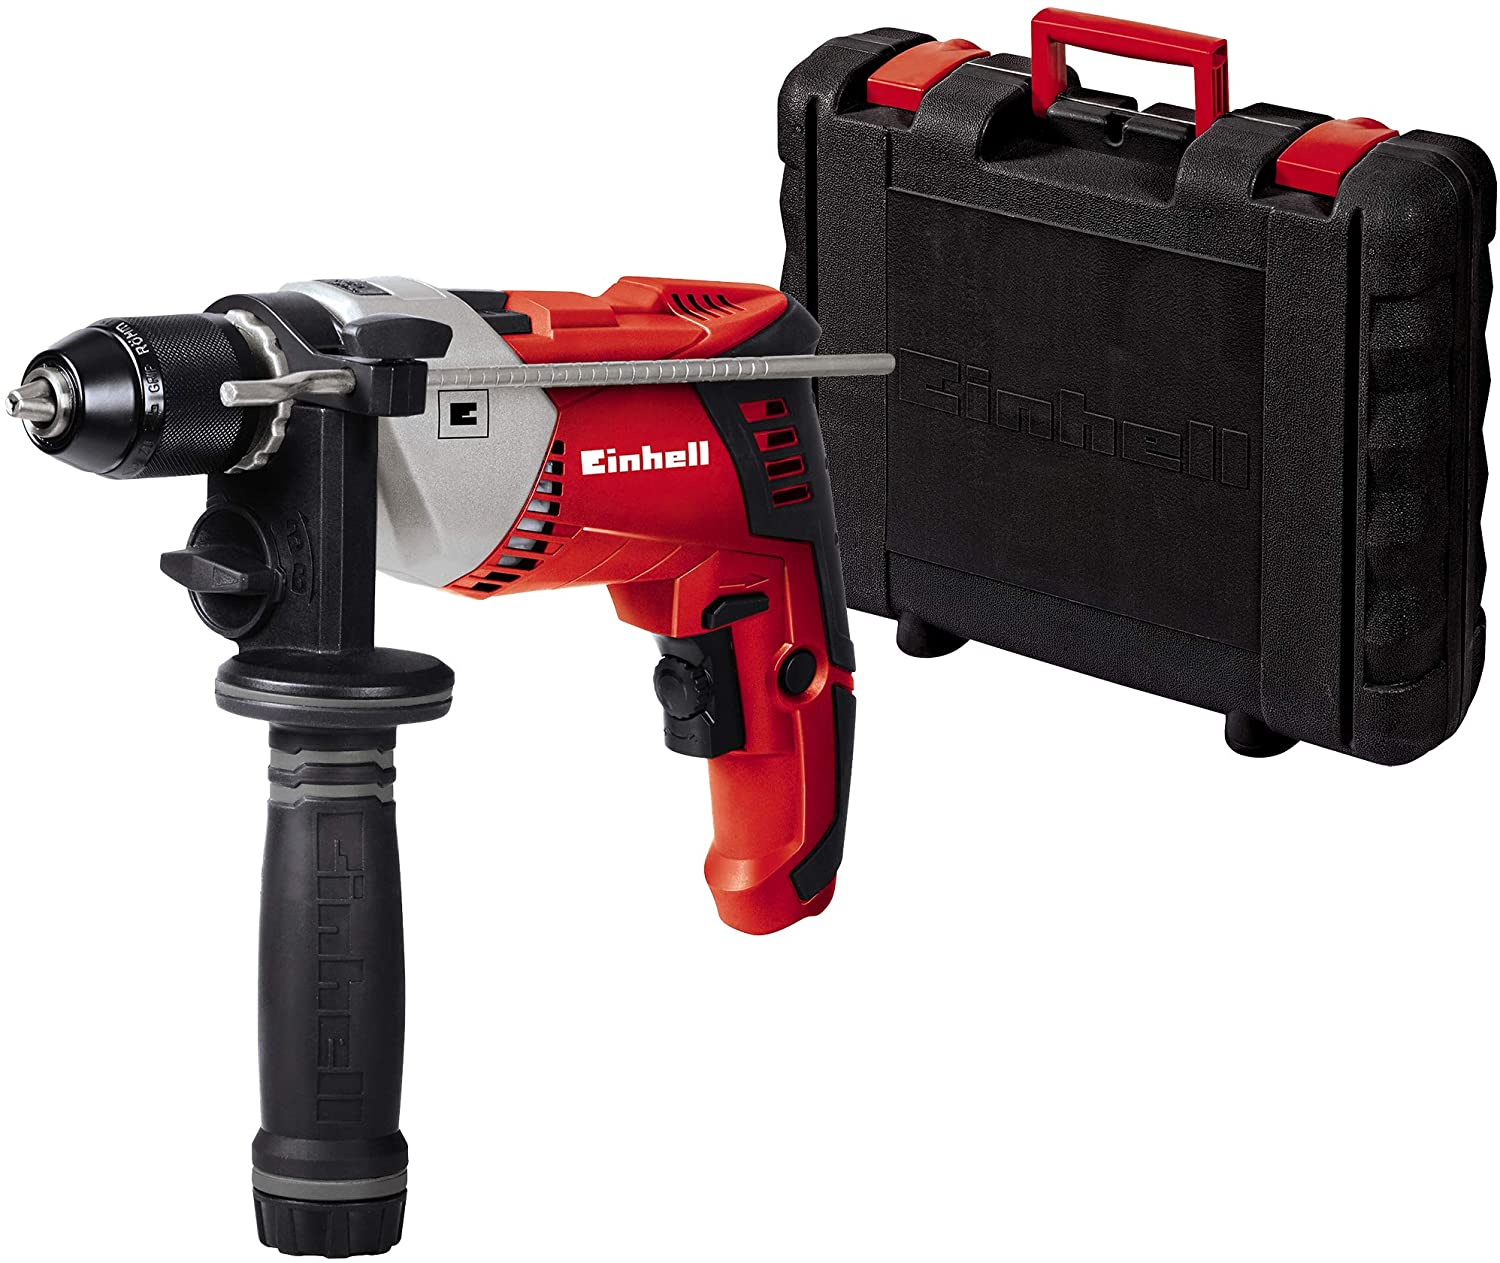 TRAPANO EINHELL TE-ID 750 750W A PERCUSSION  4259670